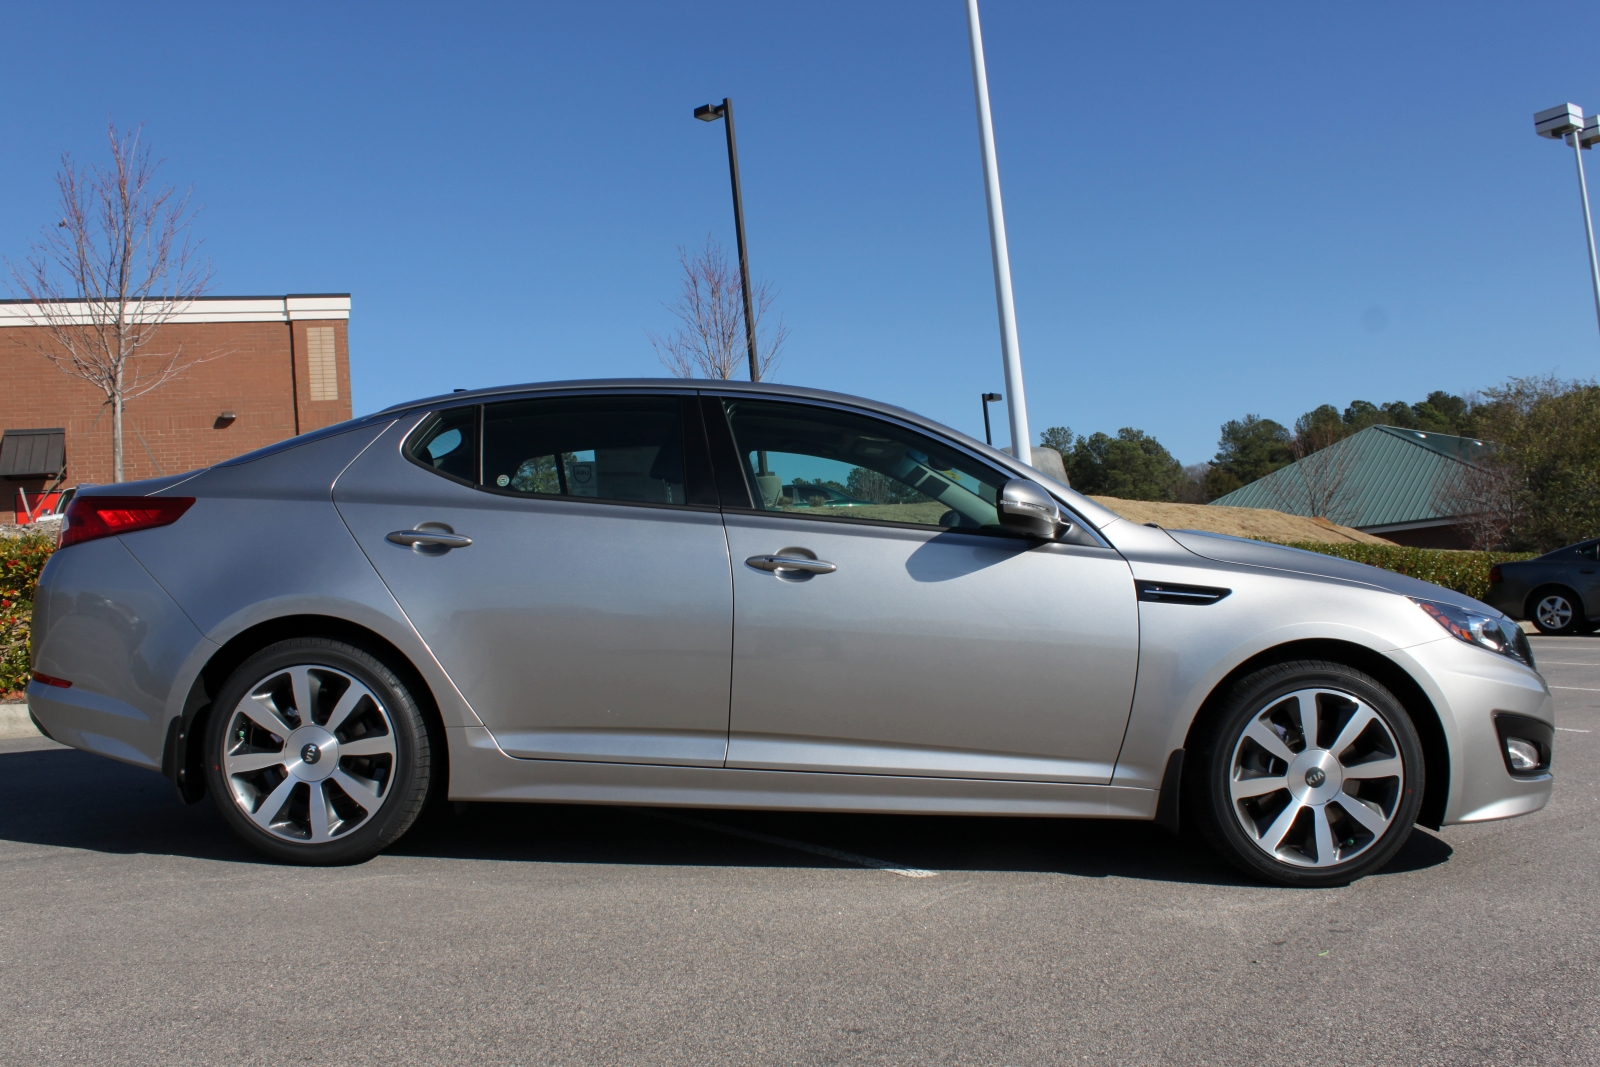 Best Engine Article Review On The Sx Theta Ii T Gdi I Have Read Yet 2012 Kia Optima Diagram 20t